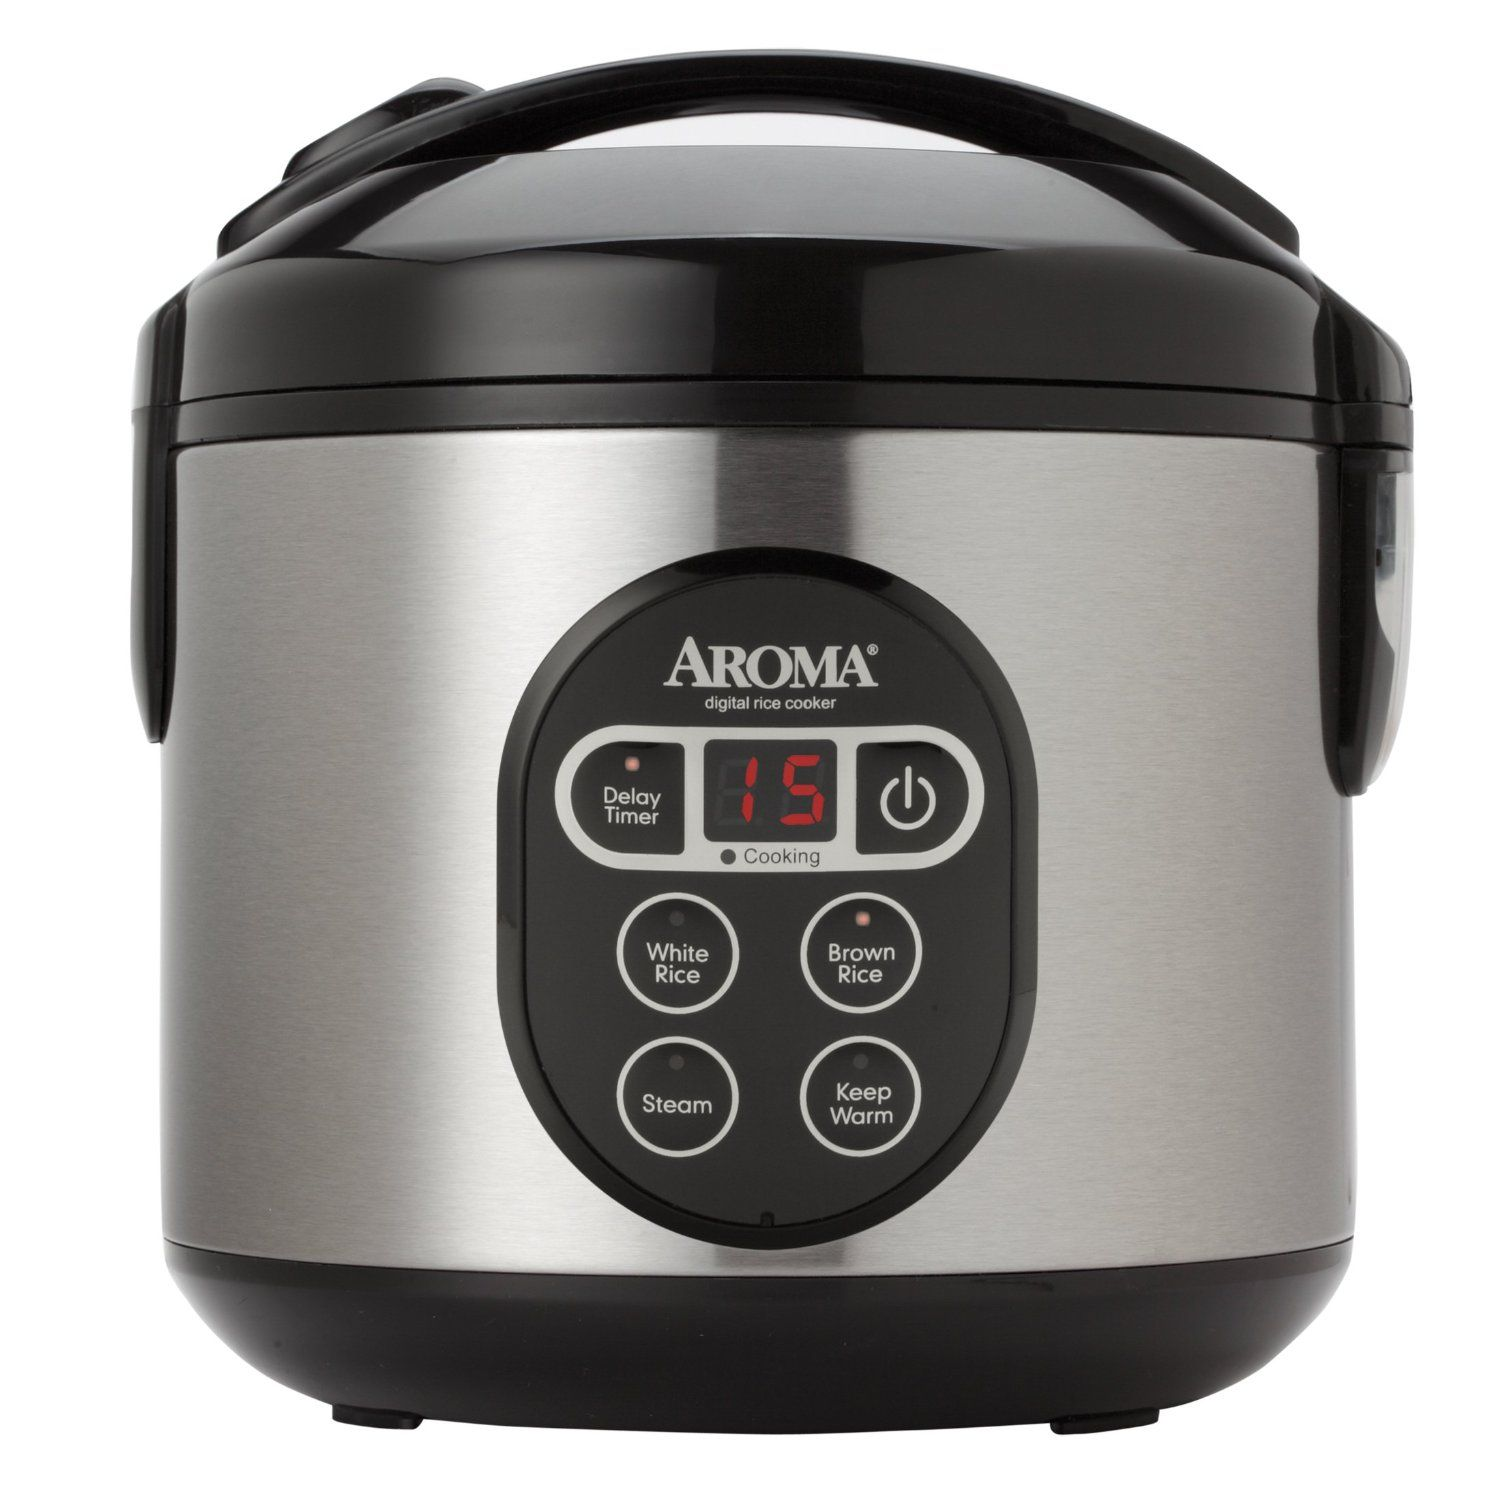 Wiring Diagram For Aroma Rice Cooker Library Electric Together With 224 Best Cookers Images On Pinterest Kitchen Appliances Cool Kitchens And Domestic